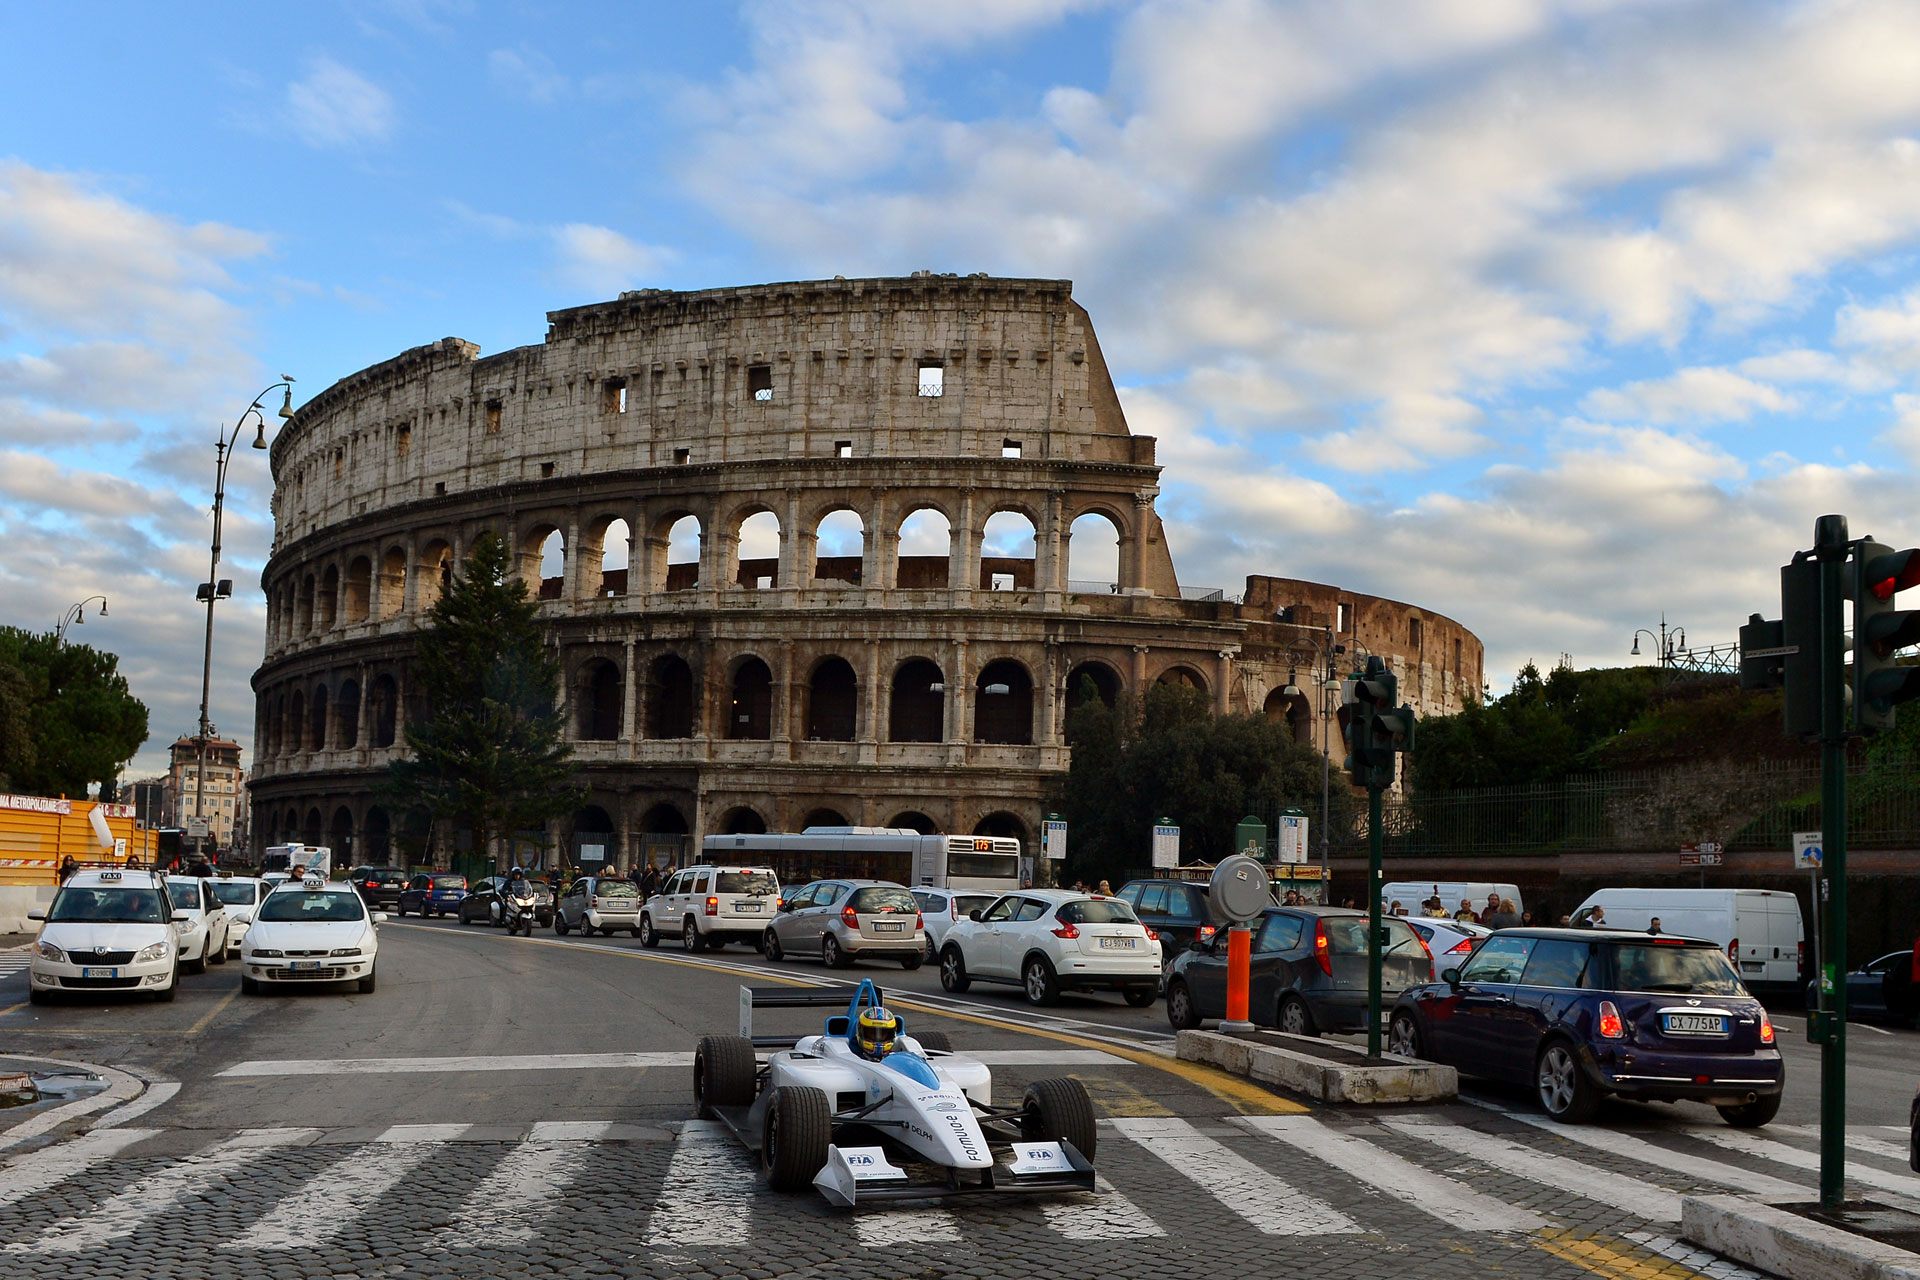 The first race of the Formula E will be Sept 2014 in Rome